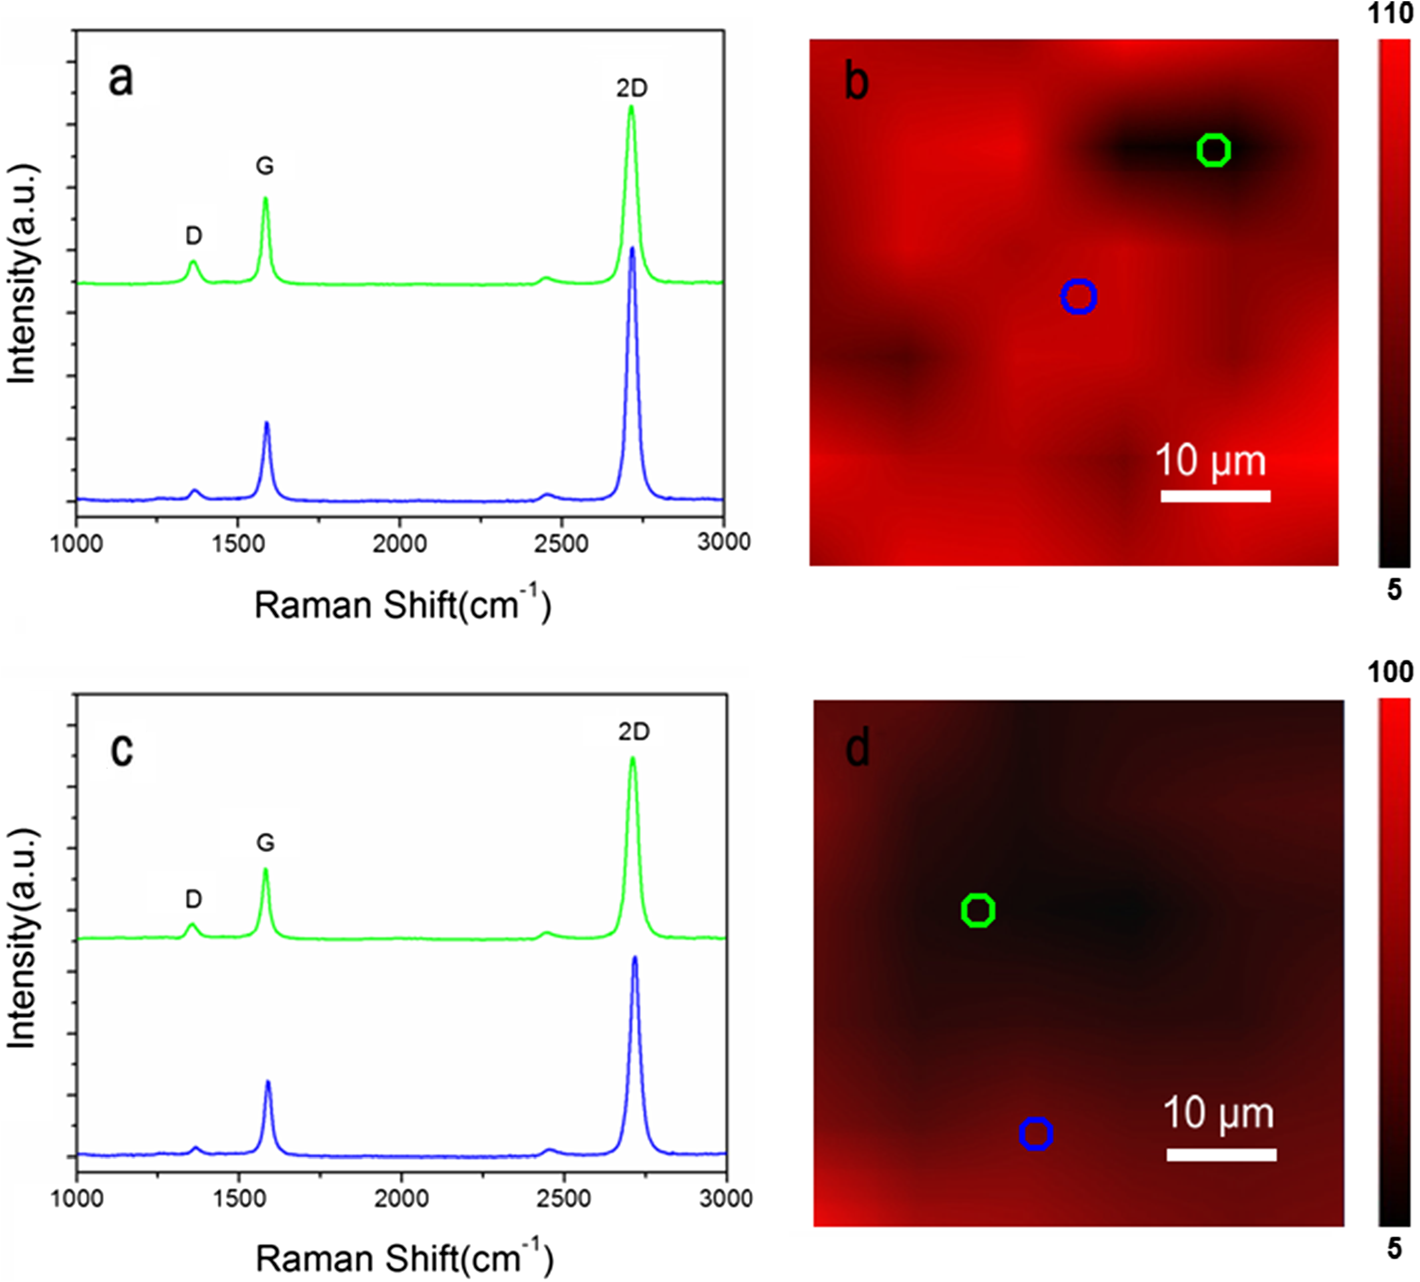 Man et al. Nanoscale Research Letters (2015) 10:279 Page 5 of 12 Fig 3 Raman spectroscopy analysis of graphene on BMN film. a Raman spectra from marked spots with corresponding colored circles in (b).